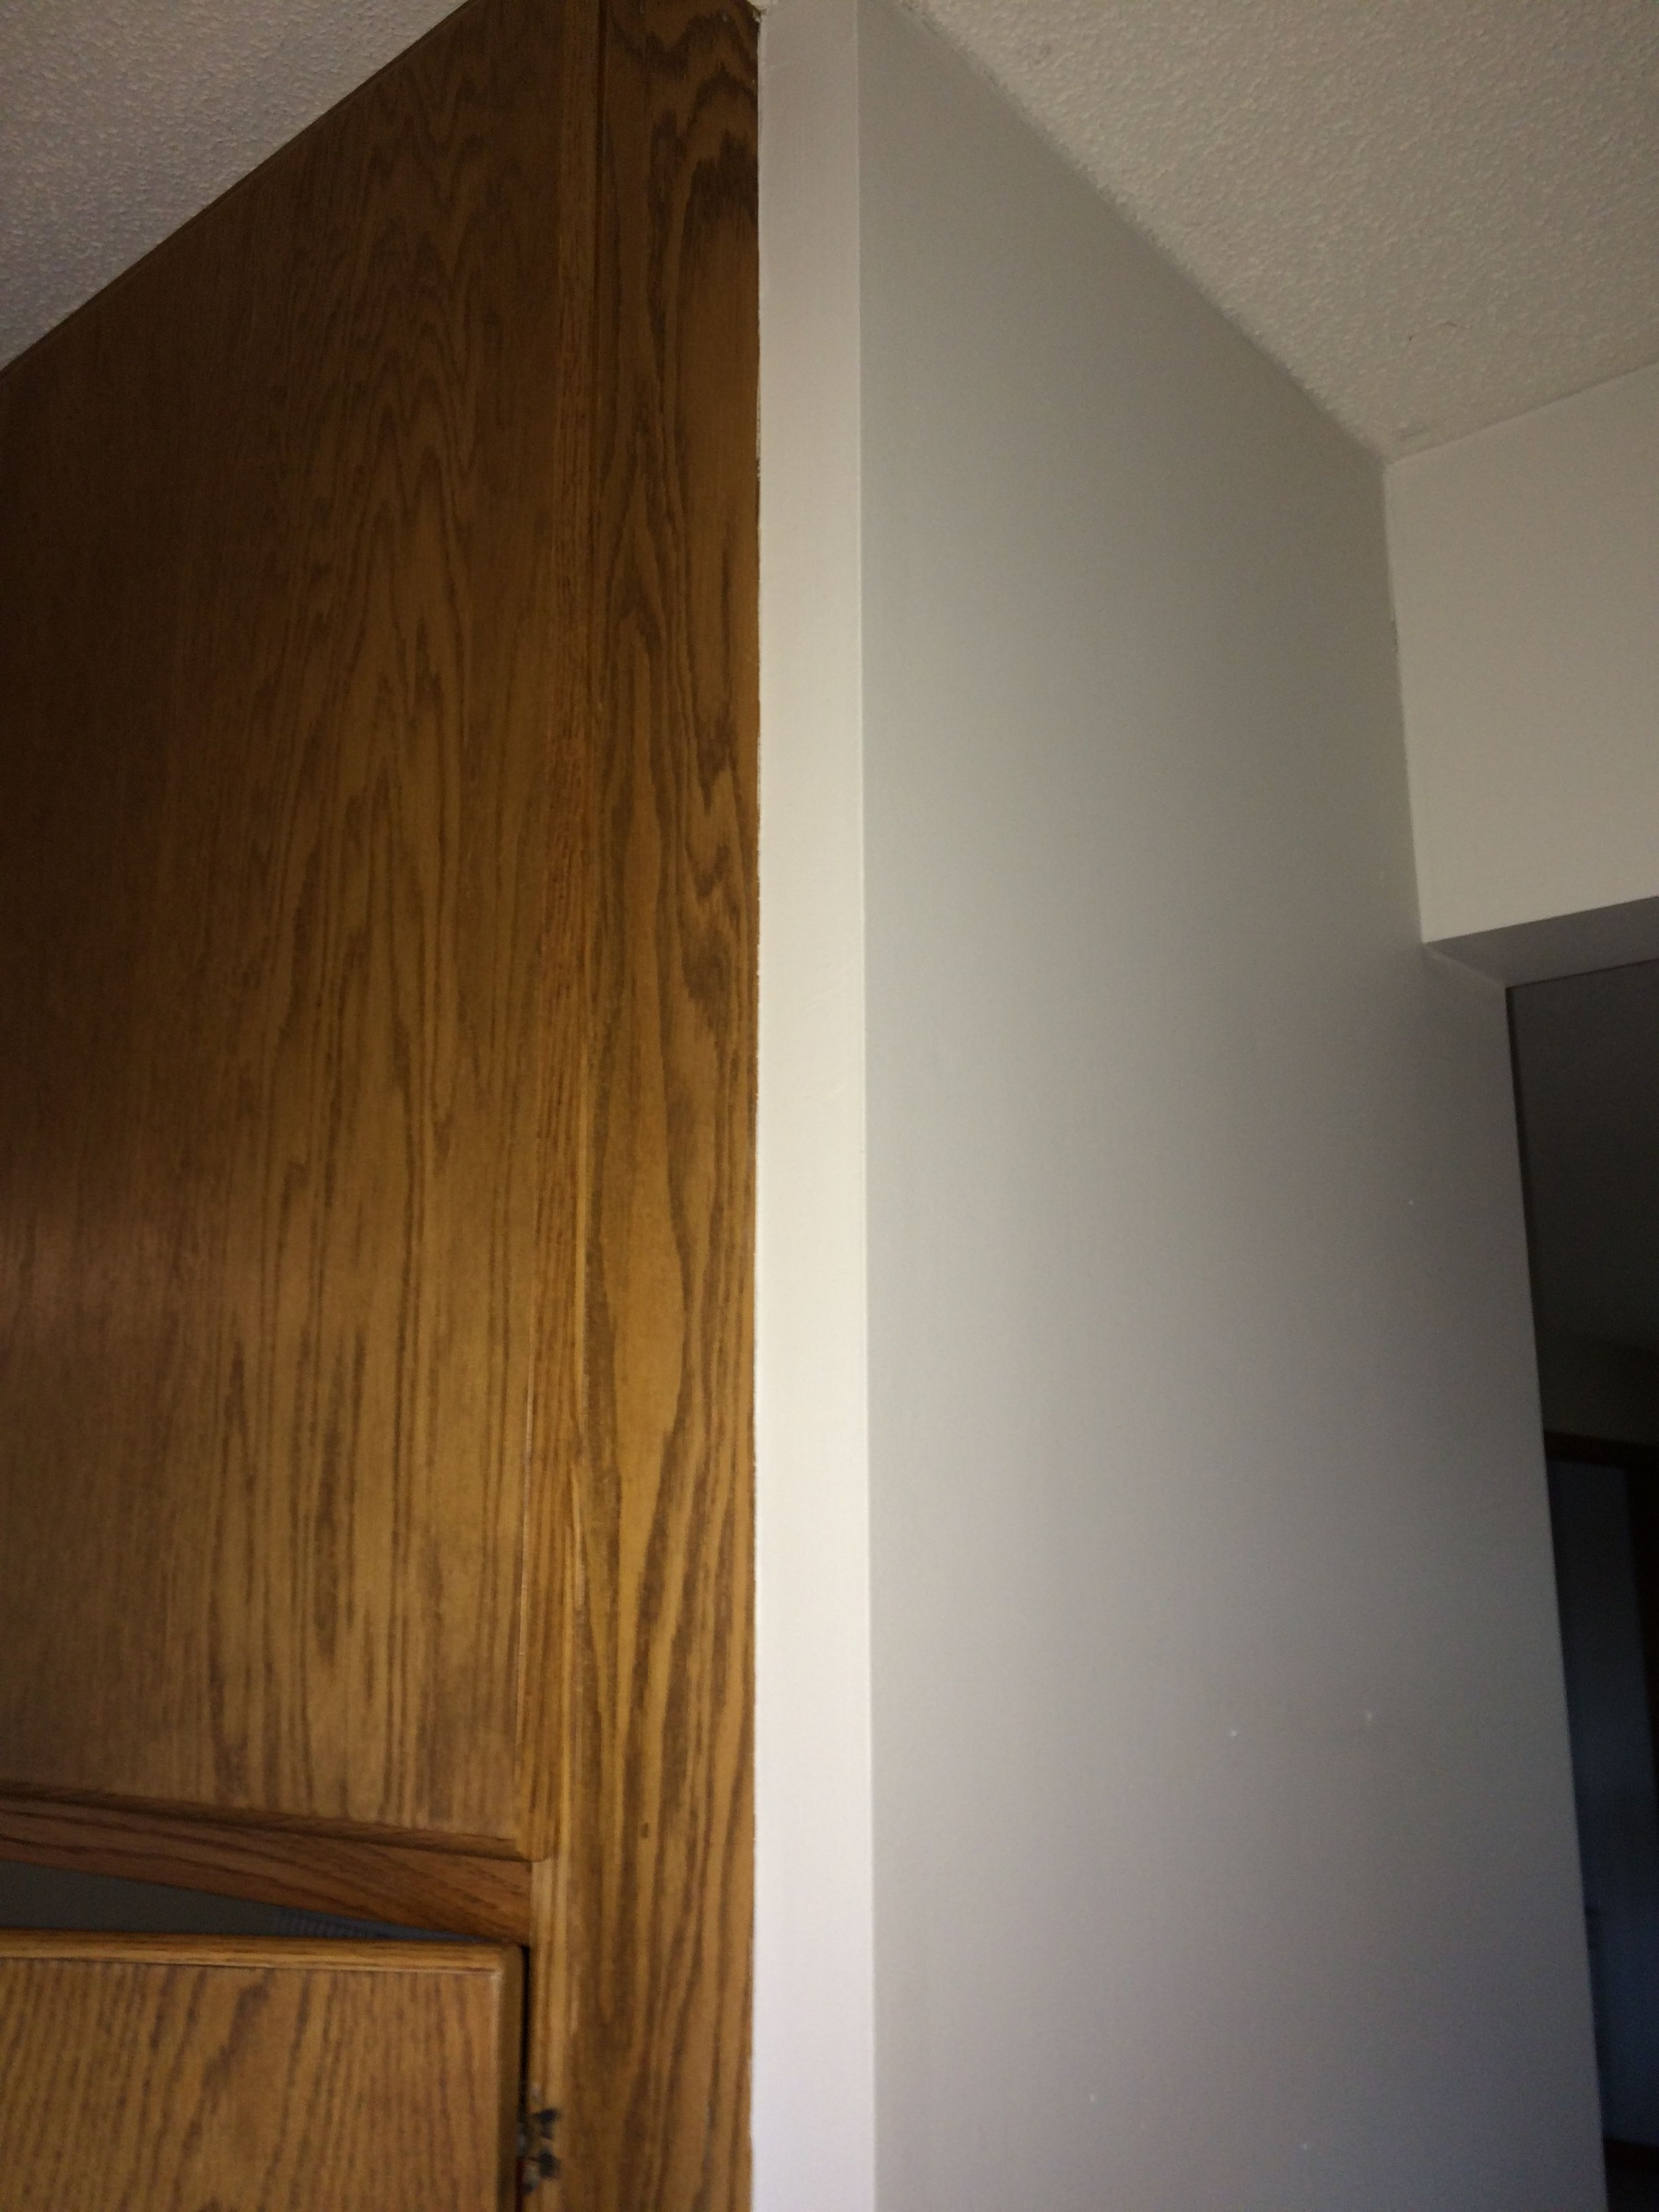 Removing floor to ceiling pantry cabinet-pic_3.jpg